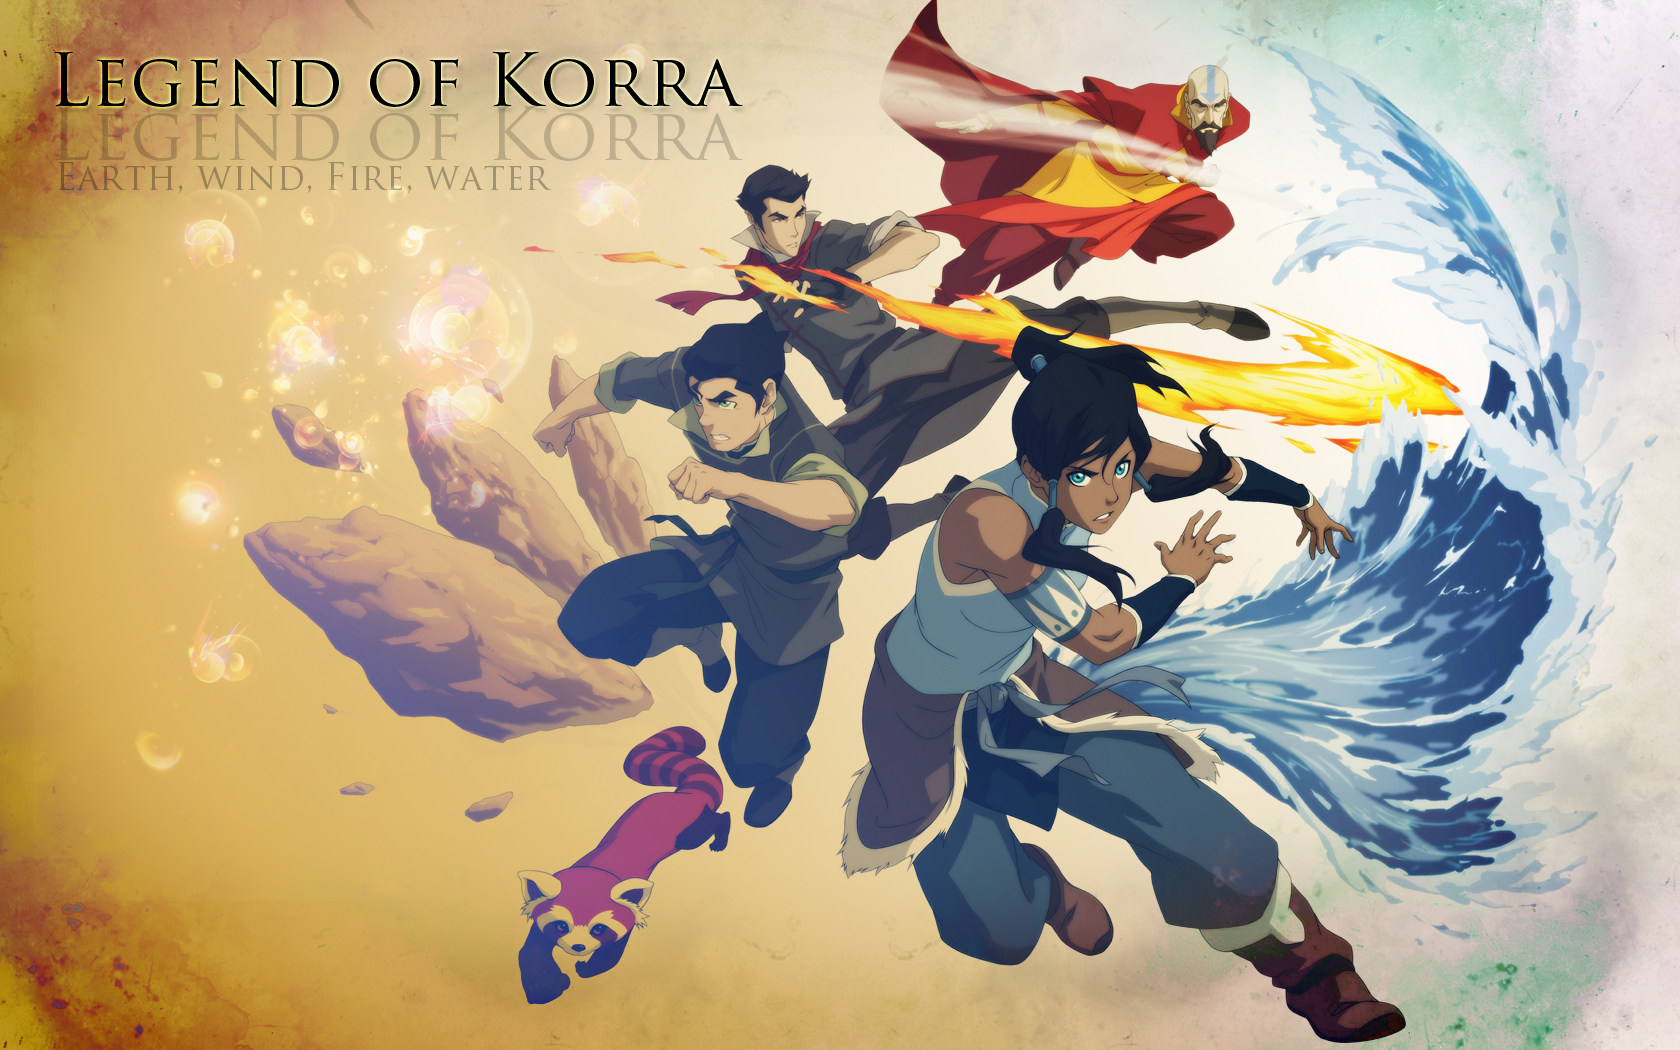 I-made-these-wallpapers-avatar-the-legend-of-korra-31681592-1680-1050